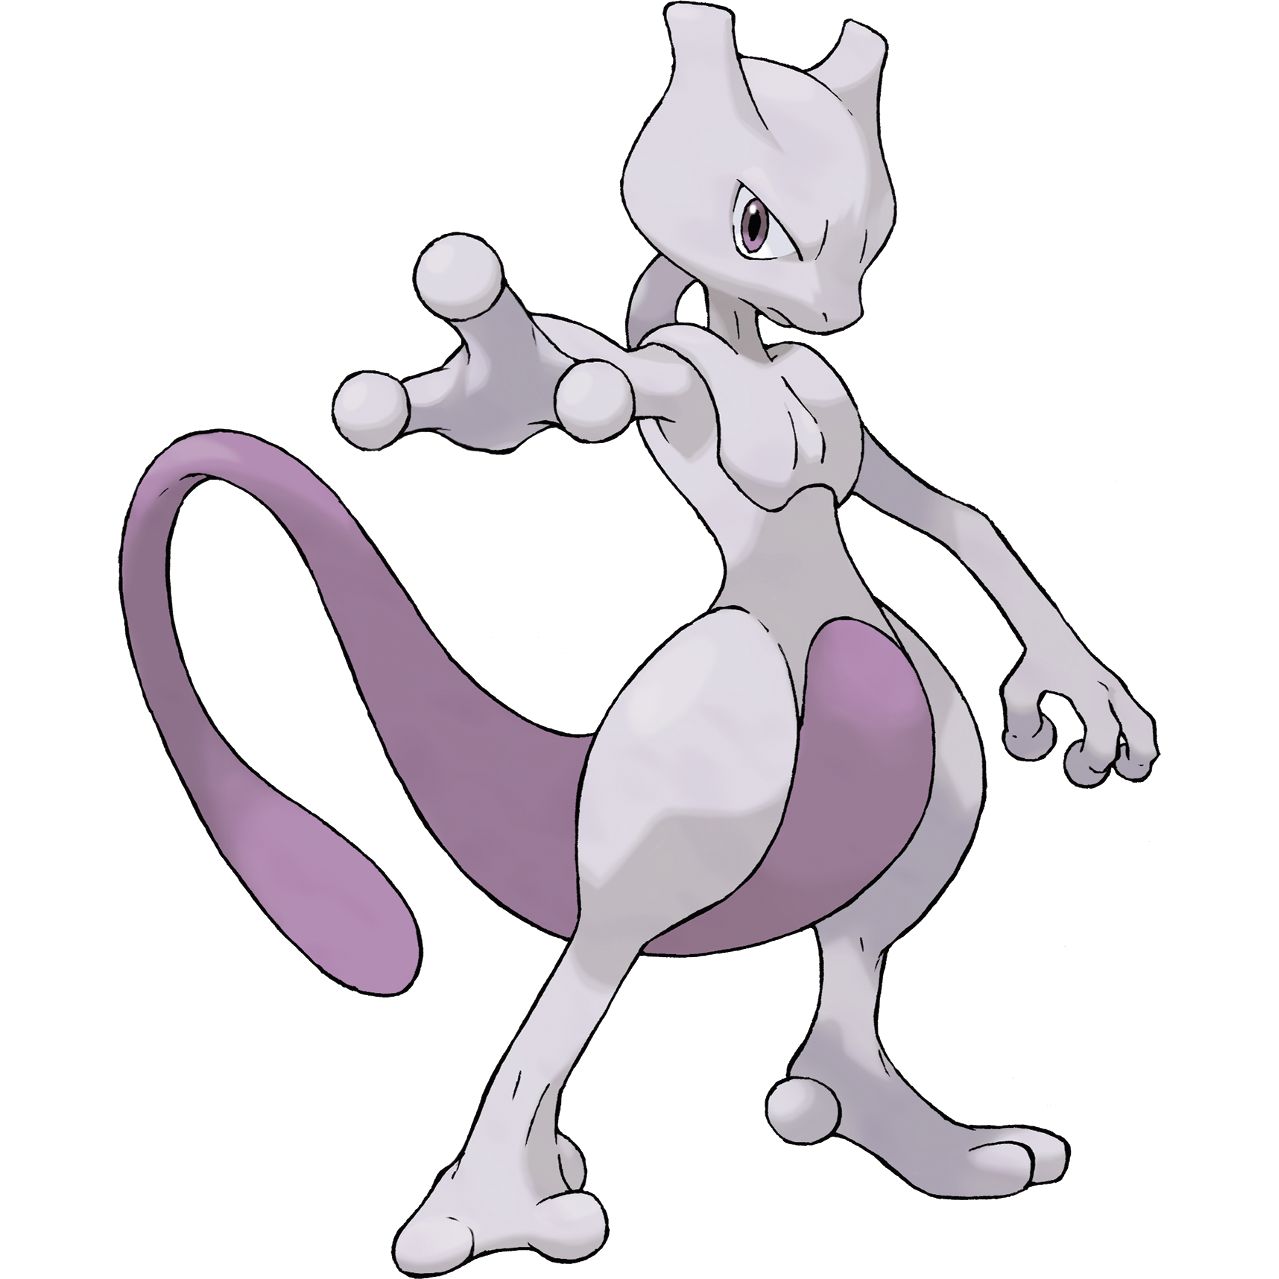 Game boy color quanto vale - 1 Mewtwo